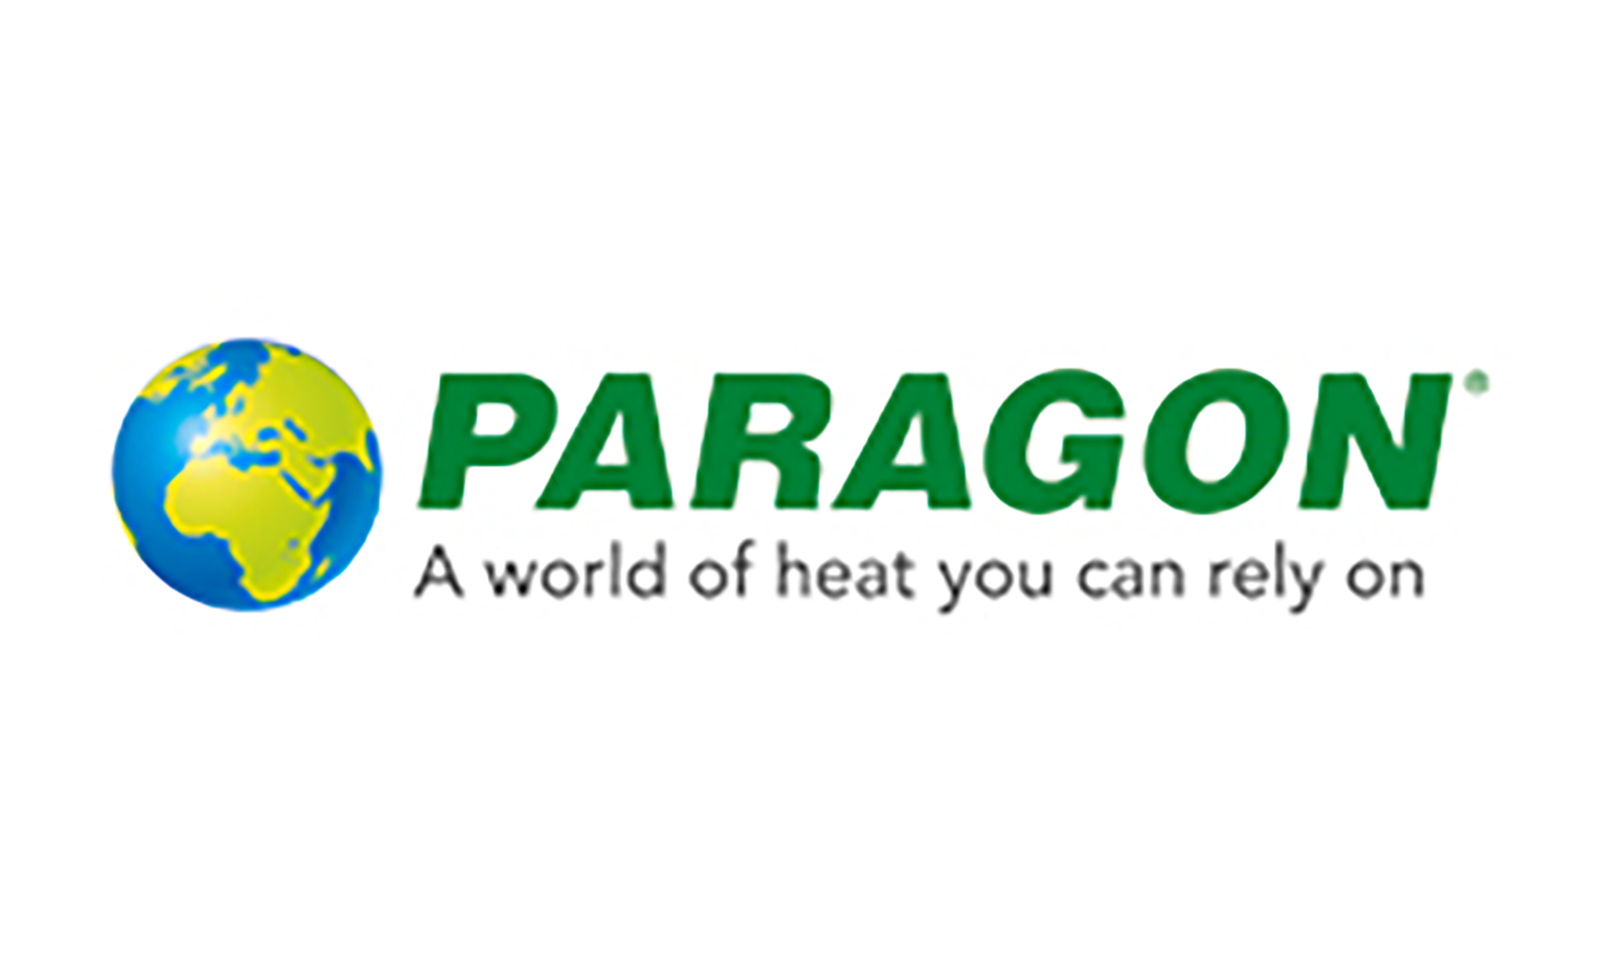 Warm Living - Paragon Fires